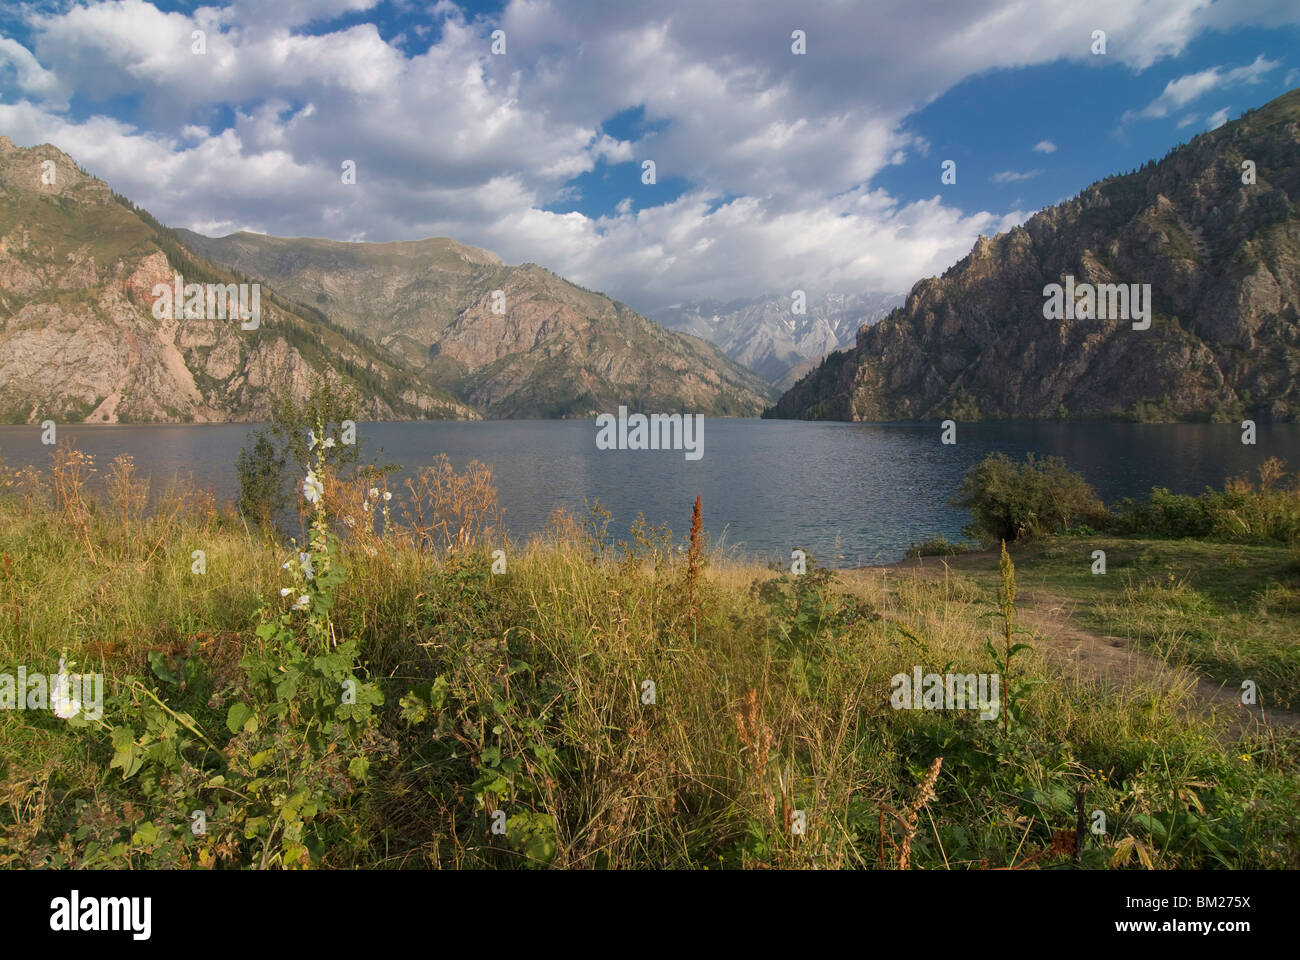 Sary Chelek UNESCO Biosphere Reserve, Kyrgyzstan, Central Asia - Stock Image